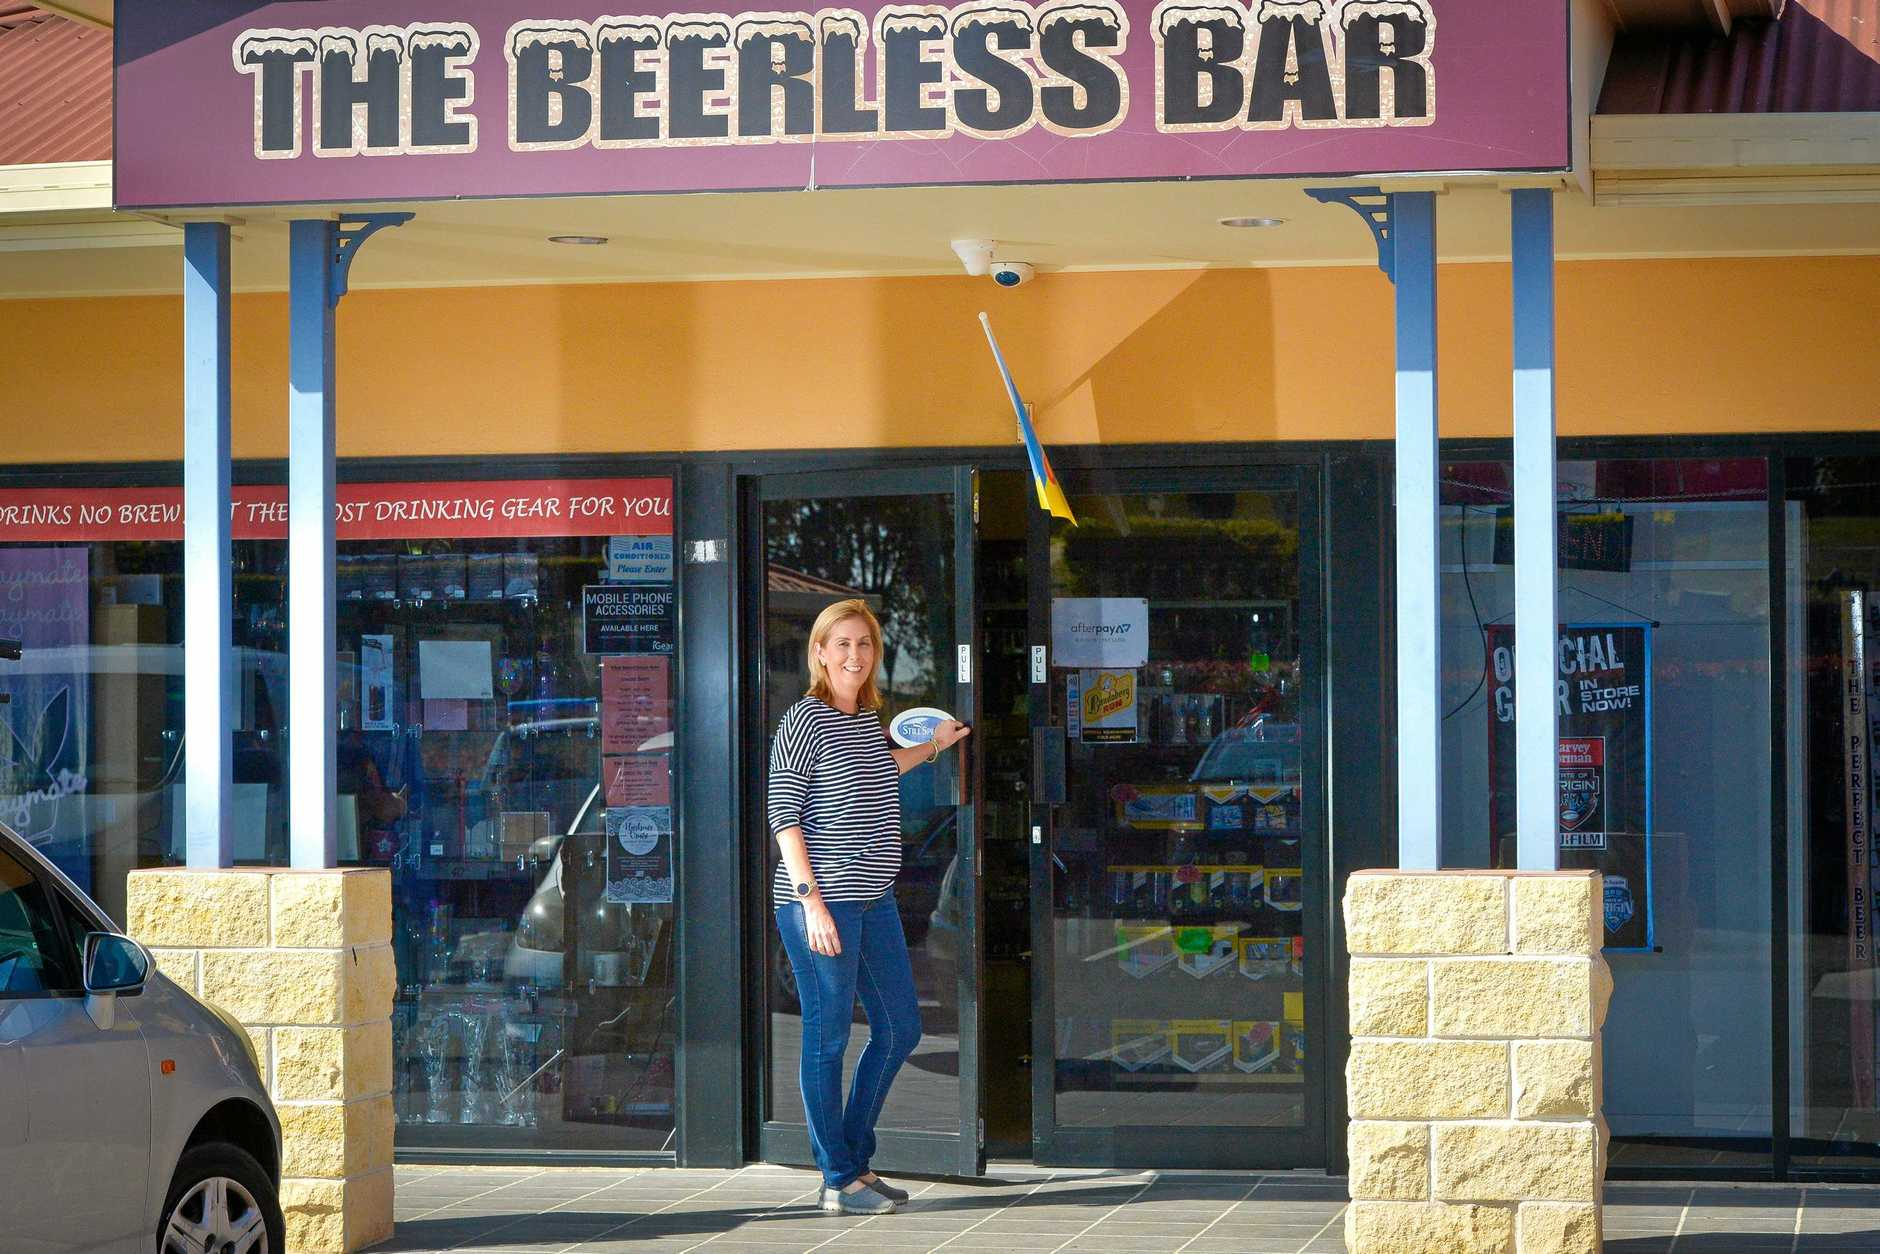 Tracey Clark from the Beerless Bar has taken new security precautions.